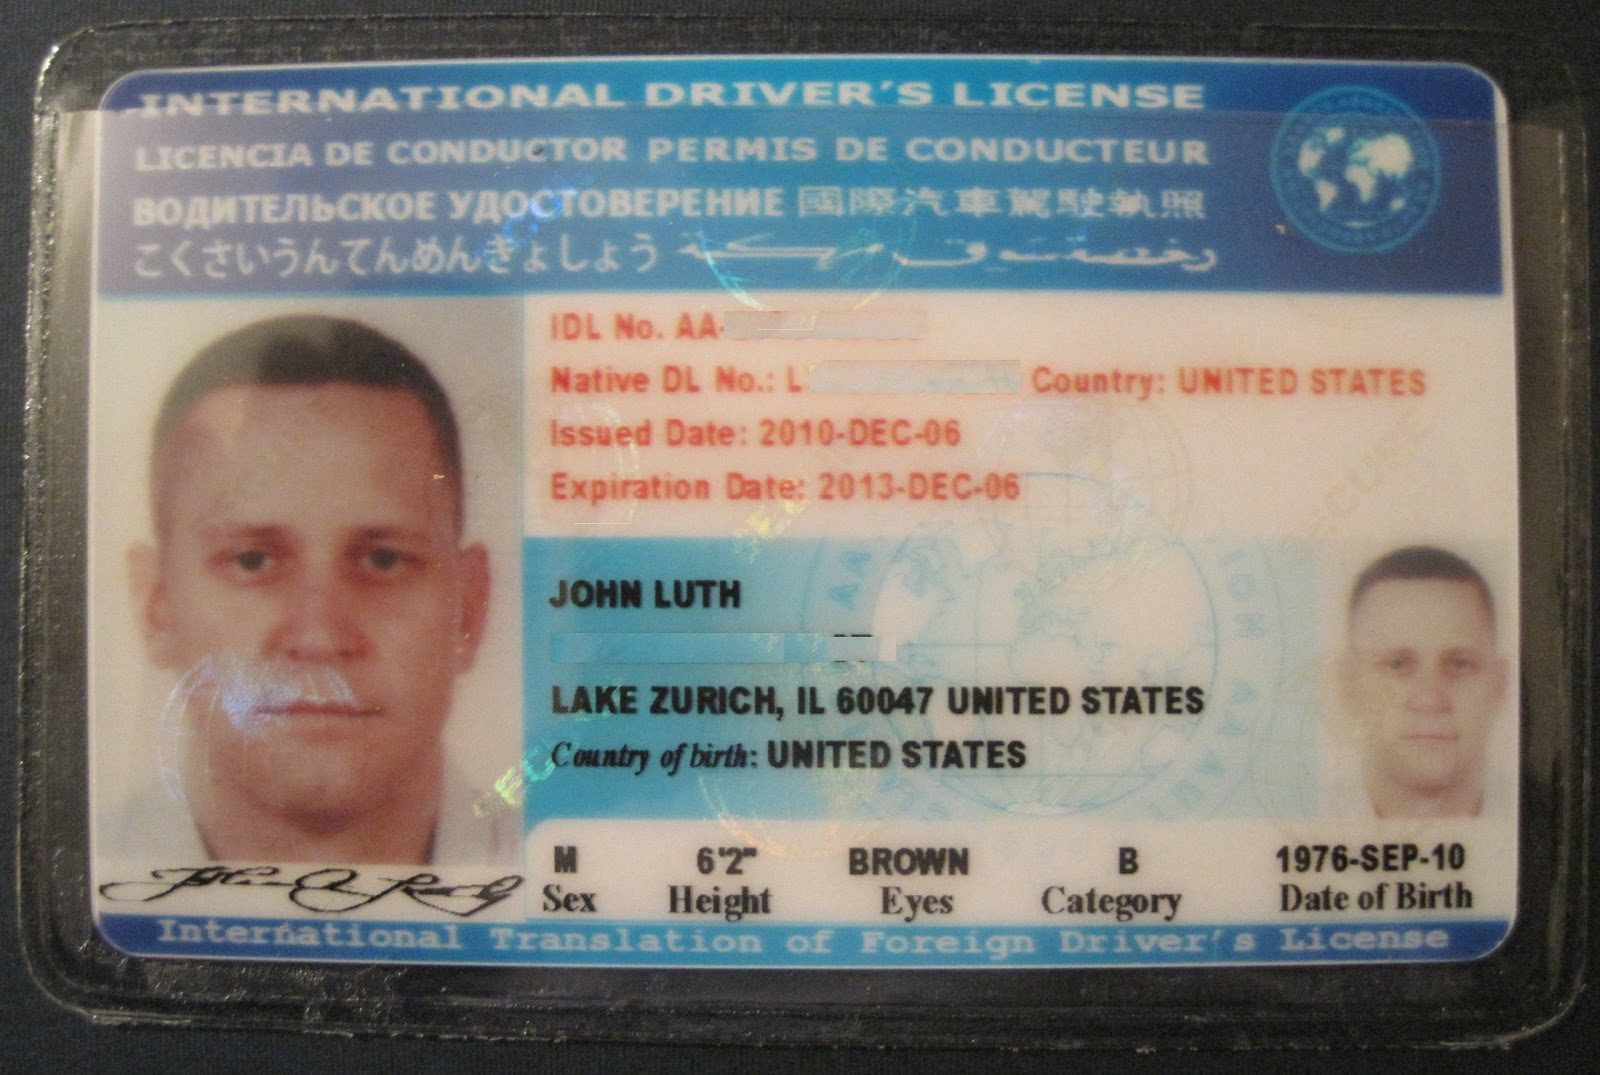 Guide - Dmvcom Illinois summer Your Card Id connecticut